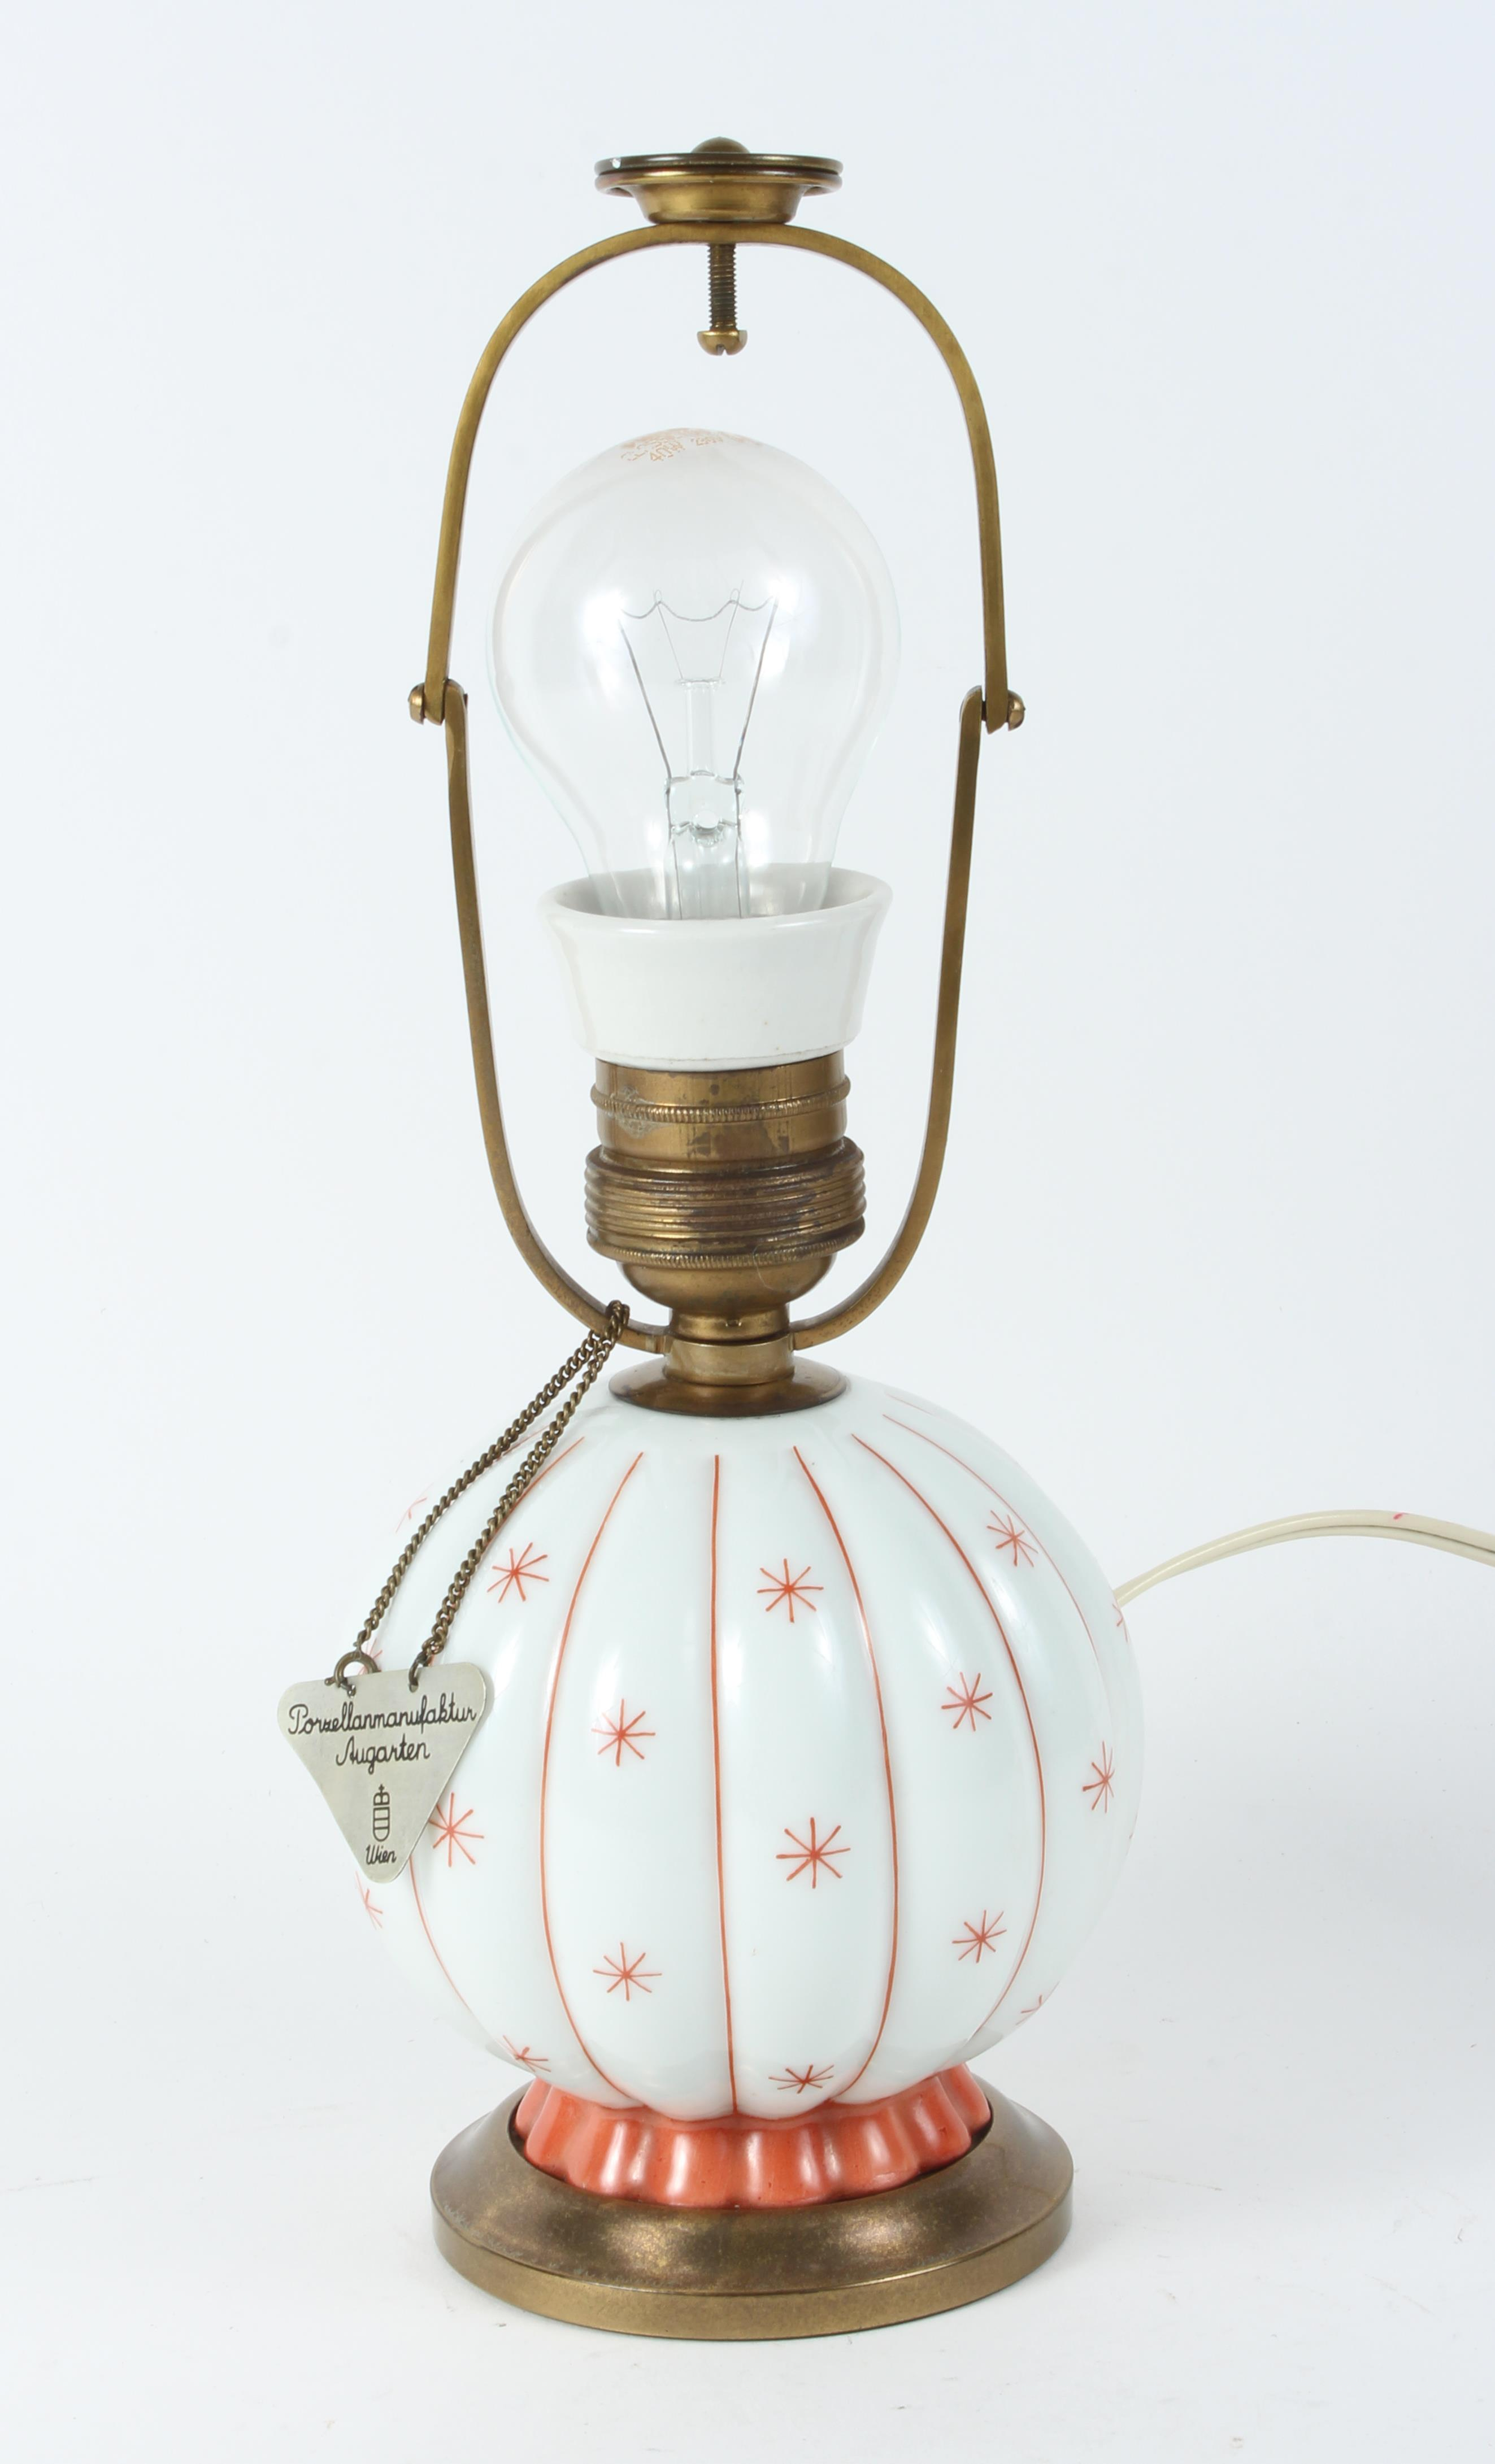 Art Deco Tischlampe Antiques 2017 01 26 Realized Price